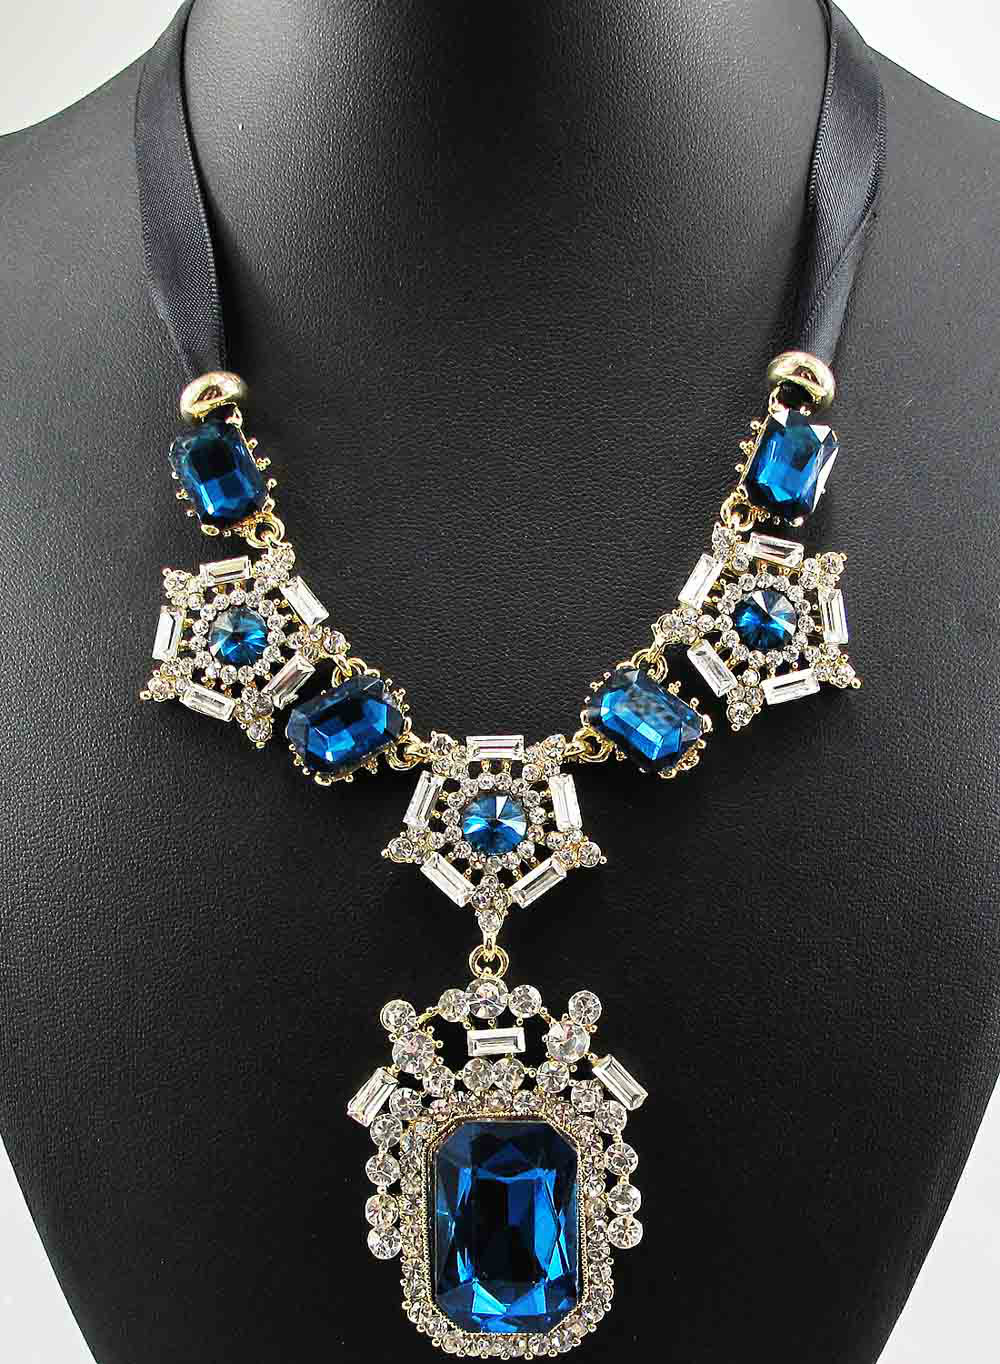 Newest Elegance Gorgeous Fashion Necklace Jewelry crystal Department Statement Necklace Women Choker Necklaces & Pendants Q671(China (Mainland))